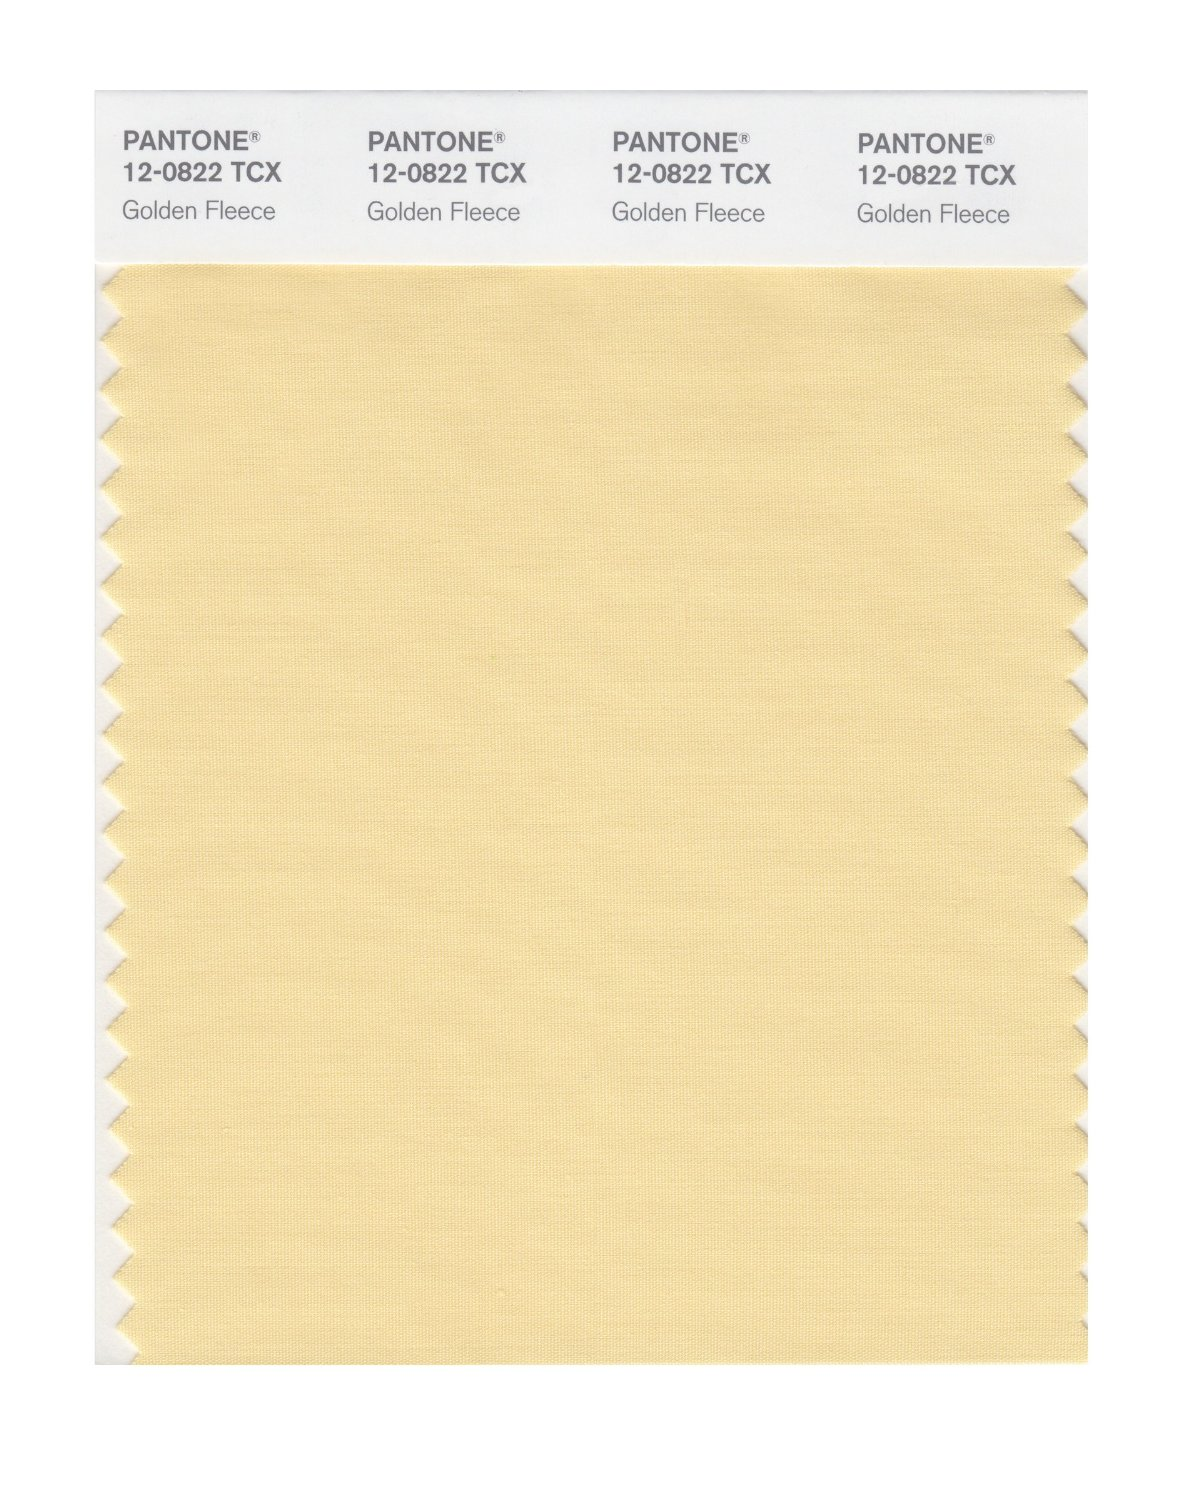 Pantone Smart Swatch 12-0822 Golden Fleece